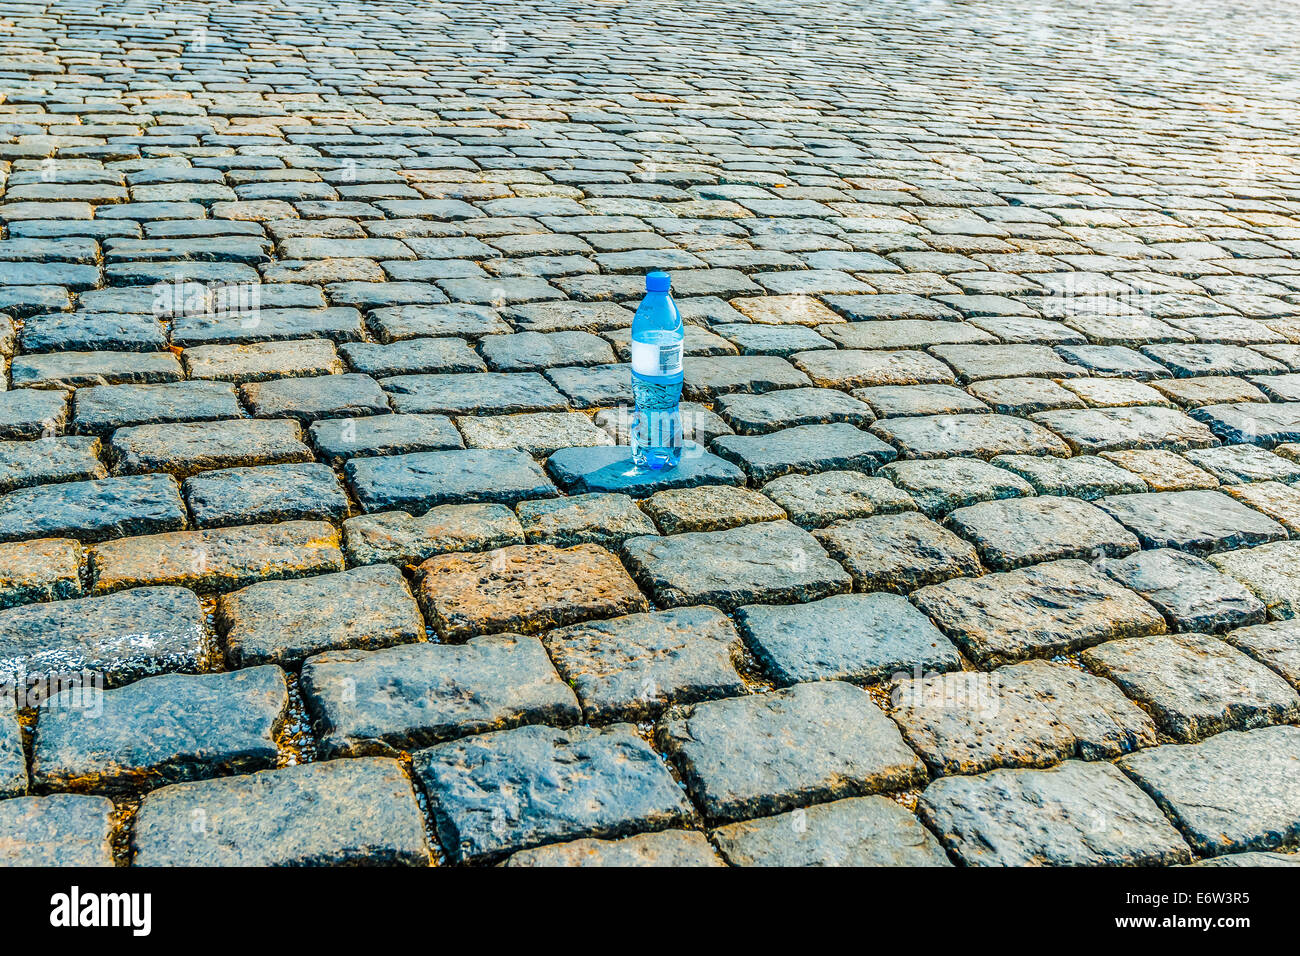 Lonely bottle of clear potable water on the torrid cobble paved ground - Stock Image